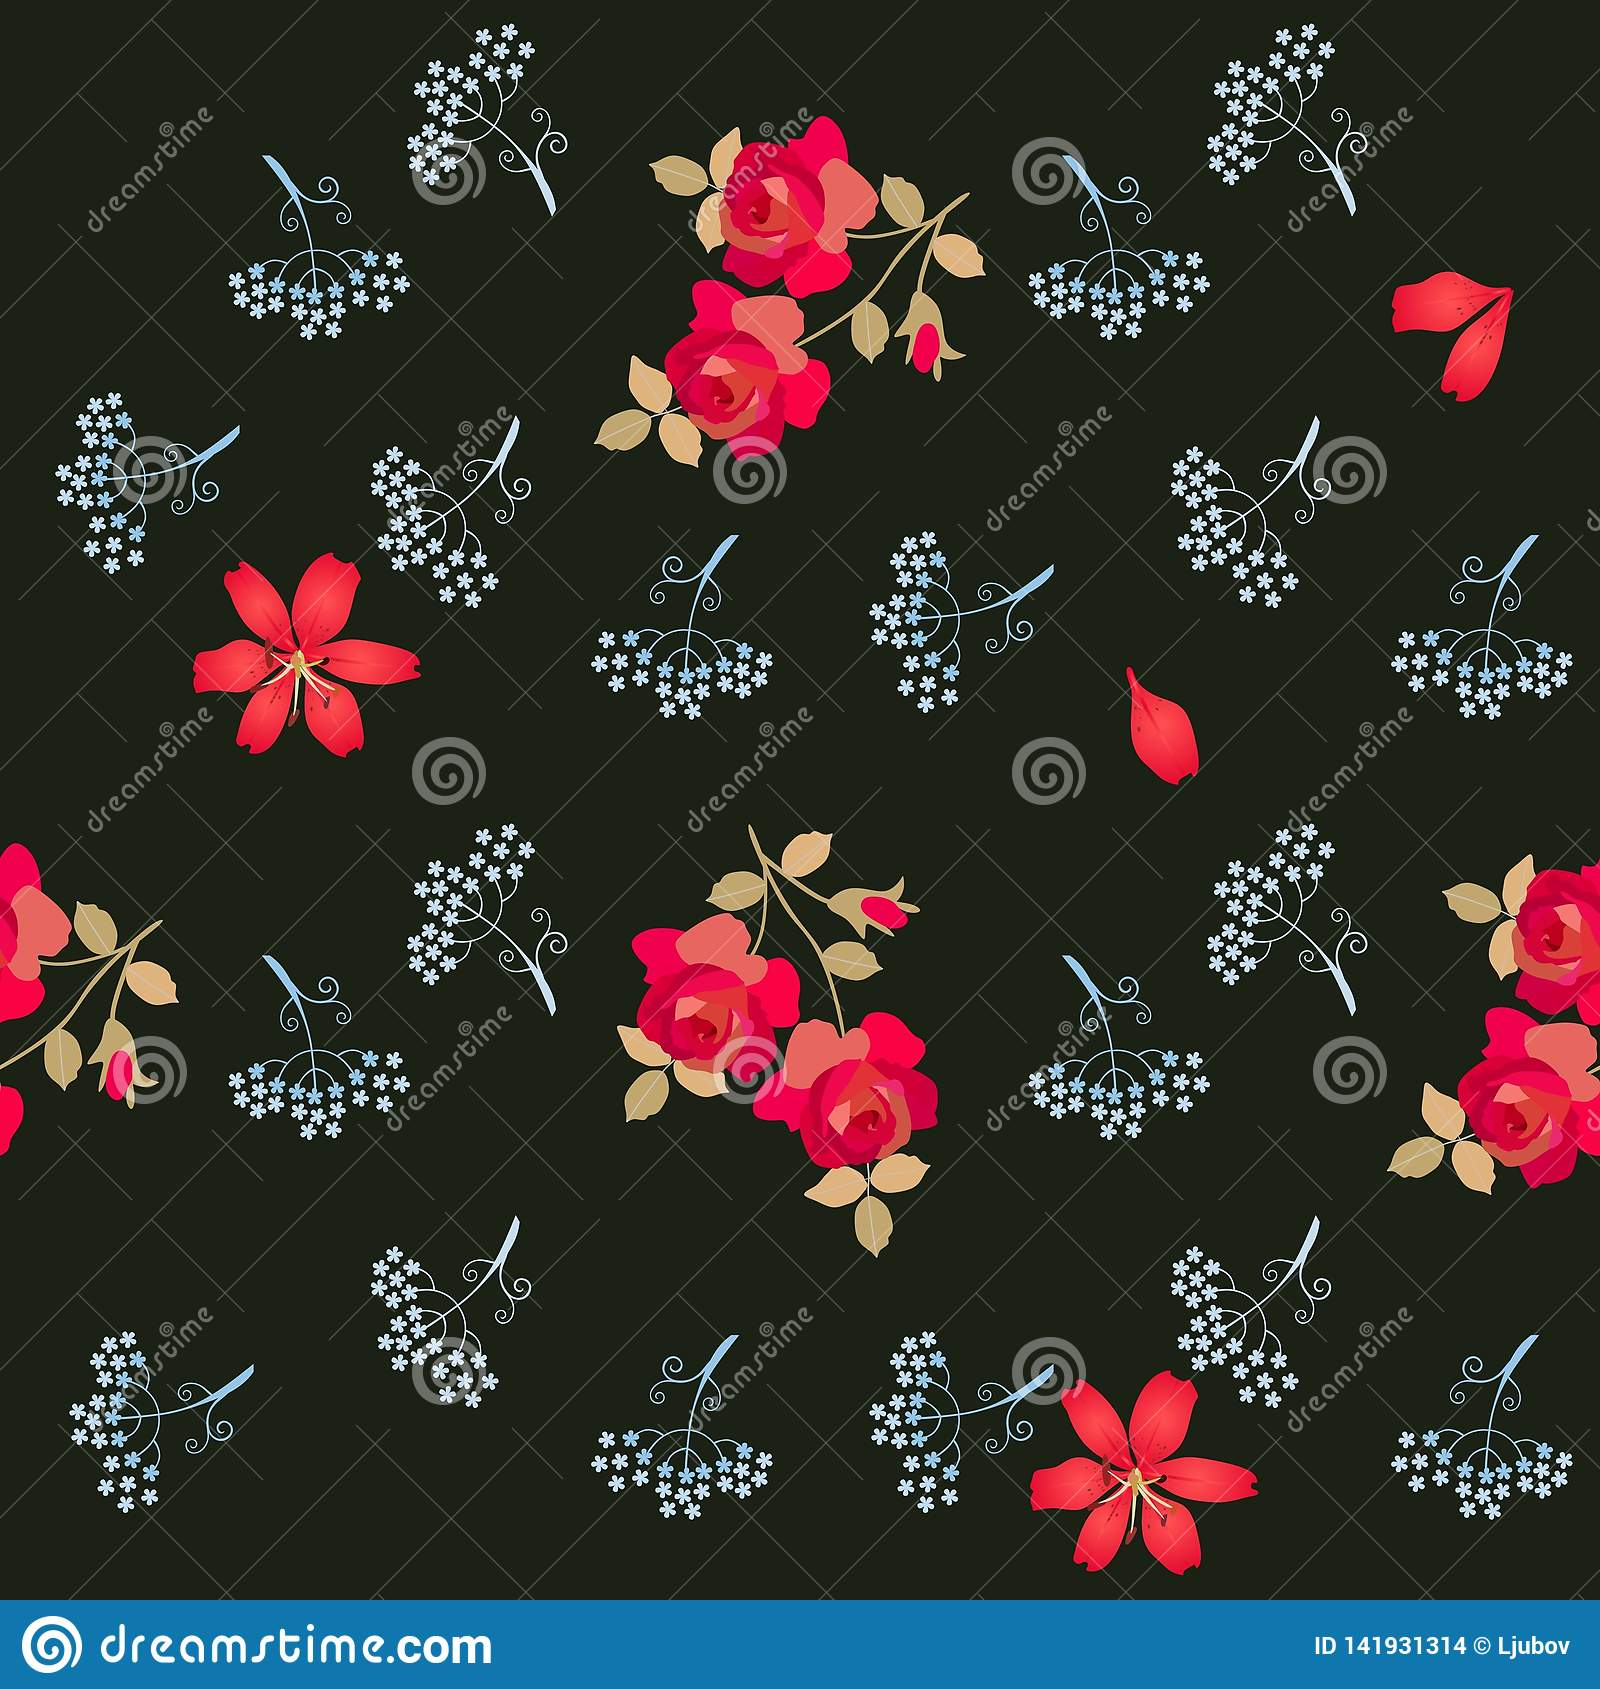 Romantic seamless floral pattern with stylized umbrella flowers, red roses and lilies isolated on black background in vector.